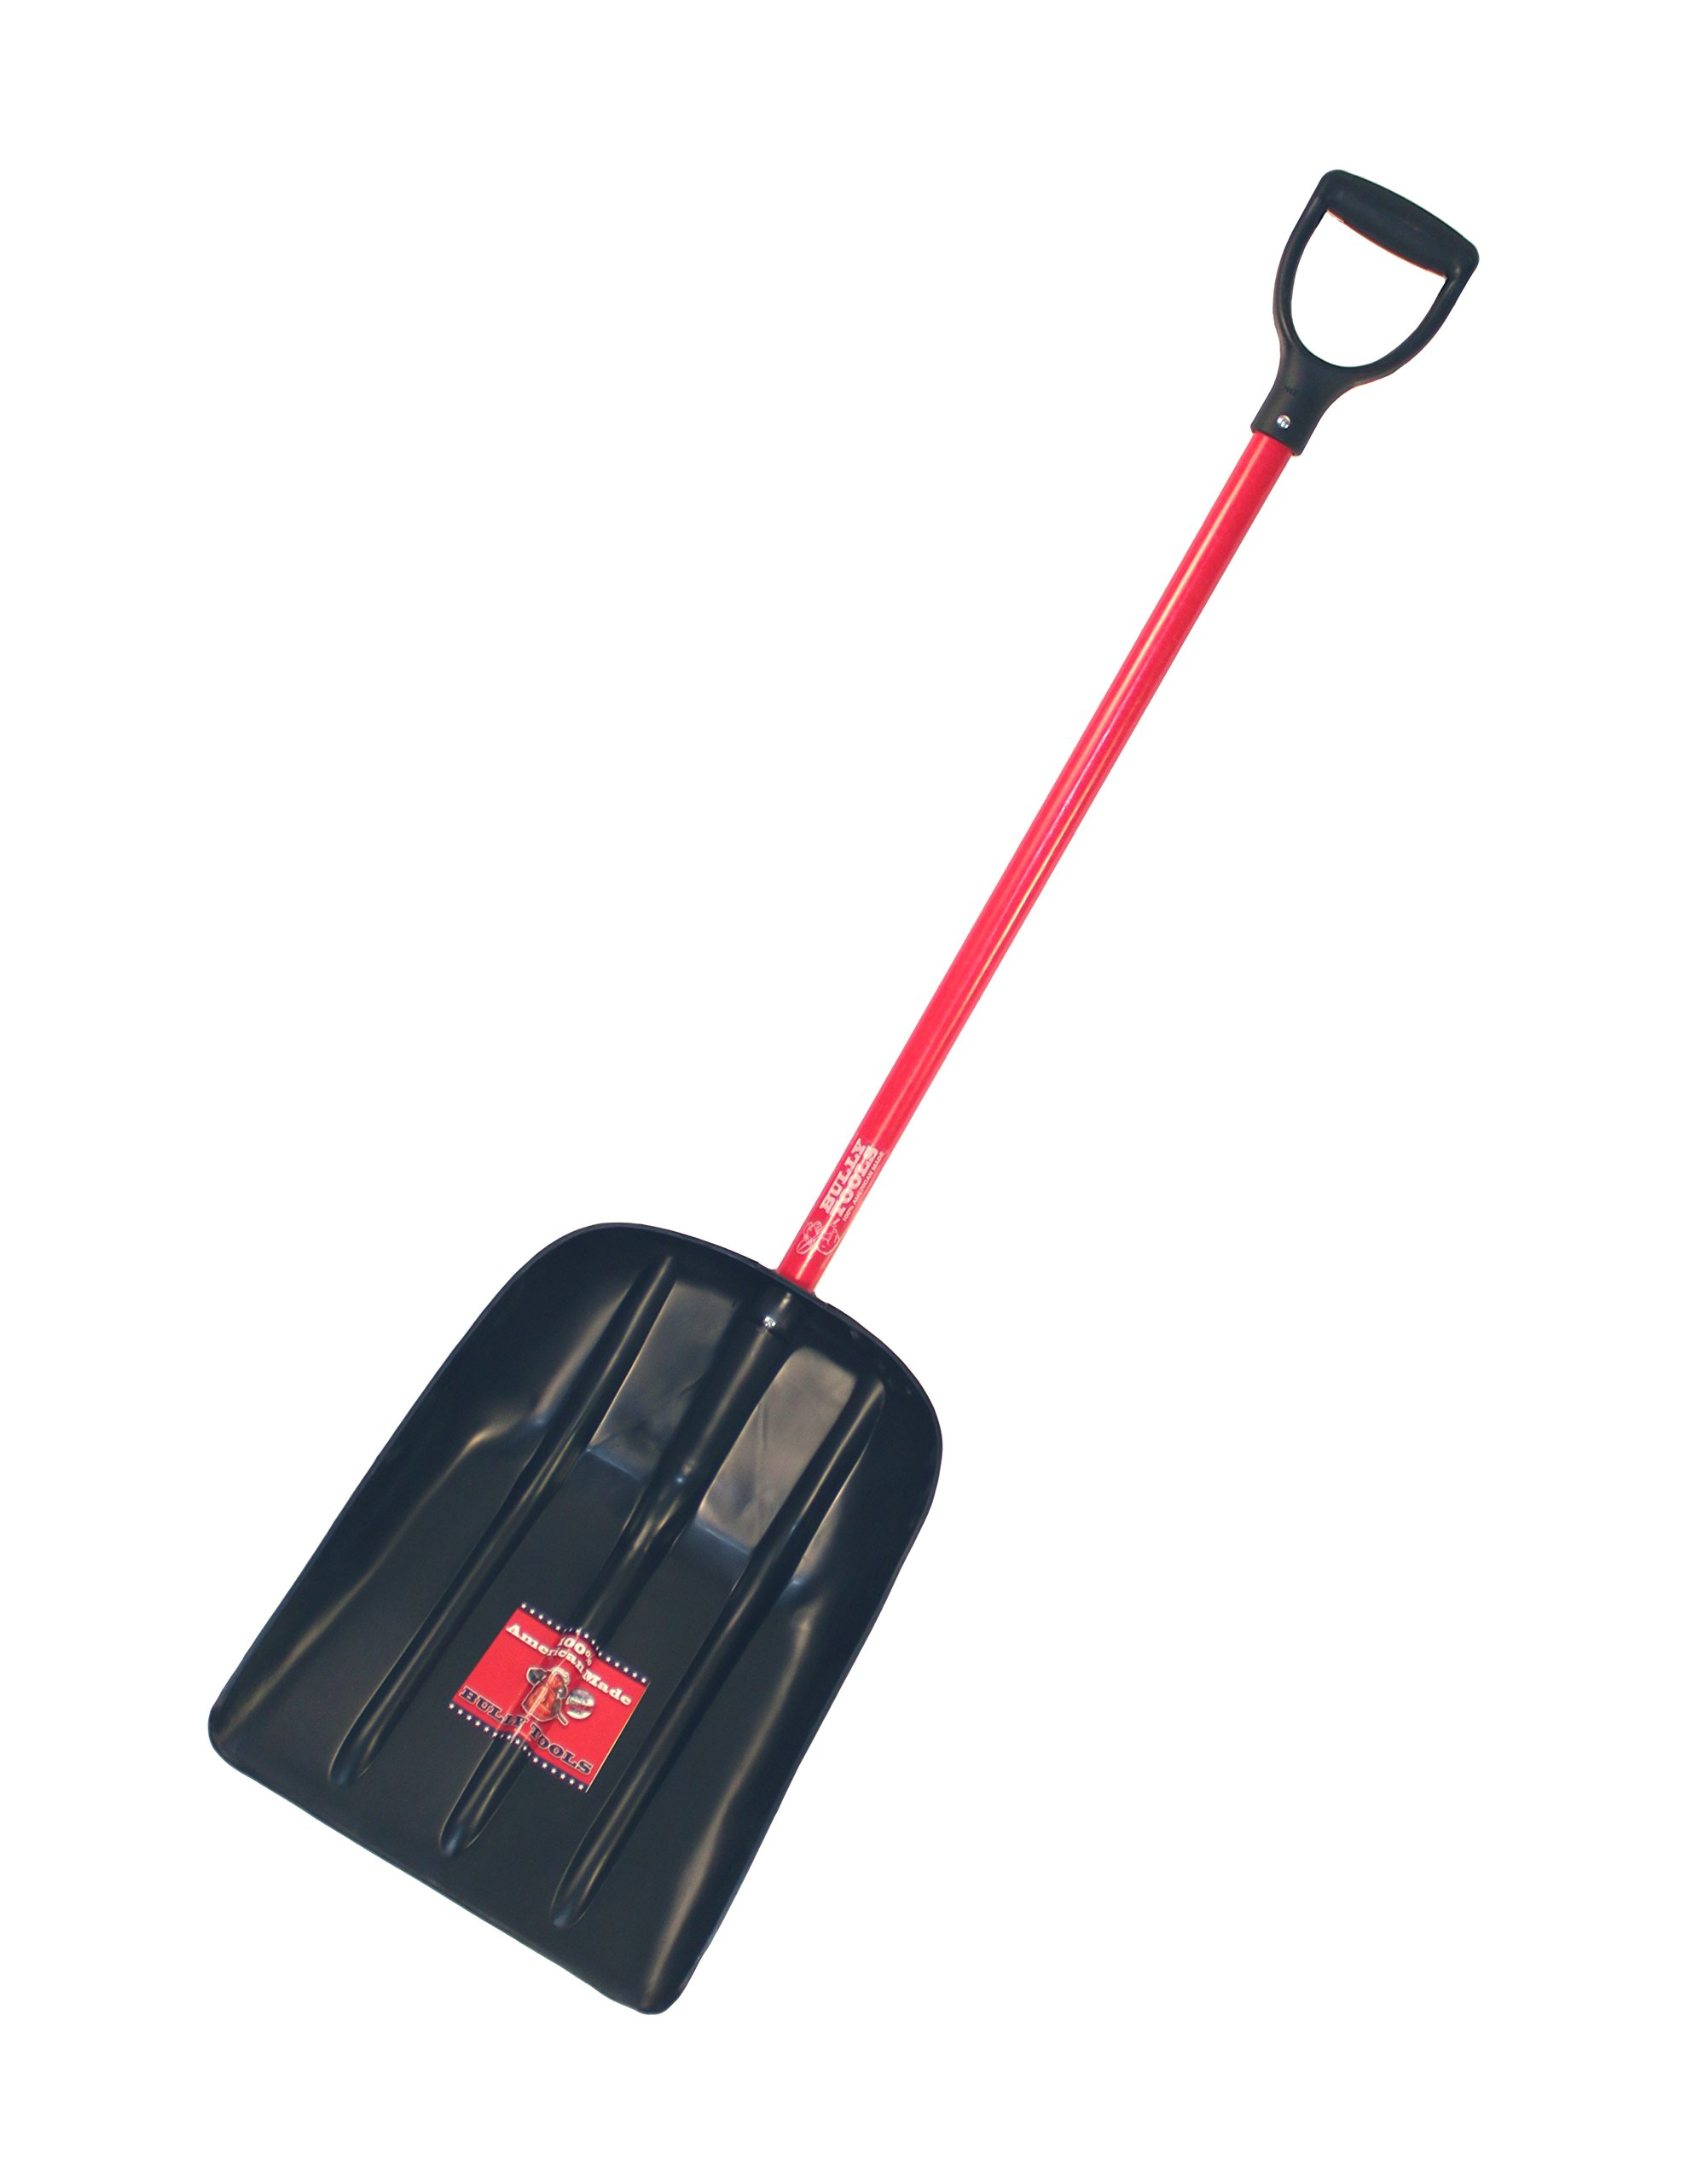 Bully Tools 92400 Mulch/Snow Scoop with Fiberglass D-Grip Handle by Bully Tools